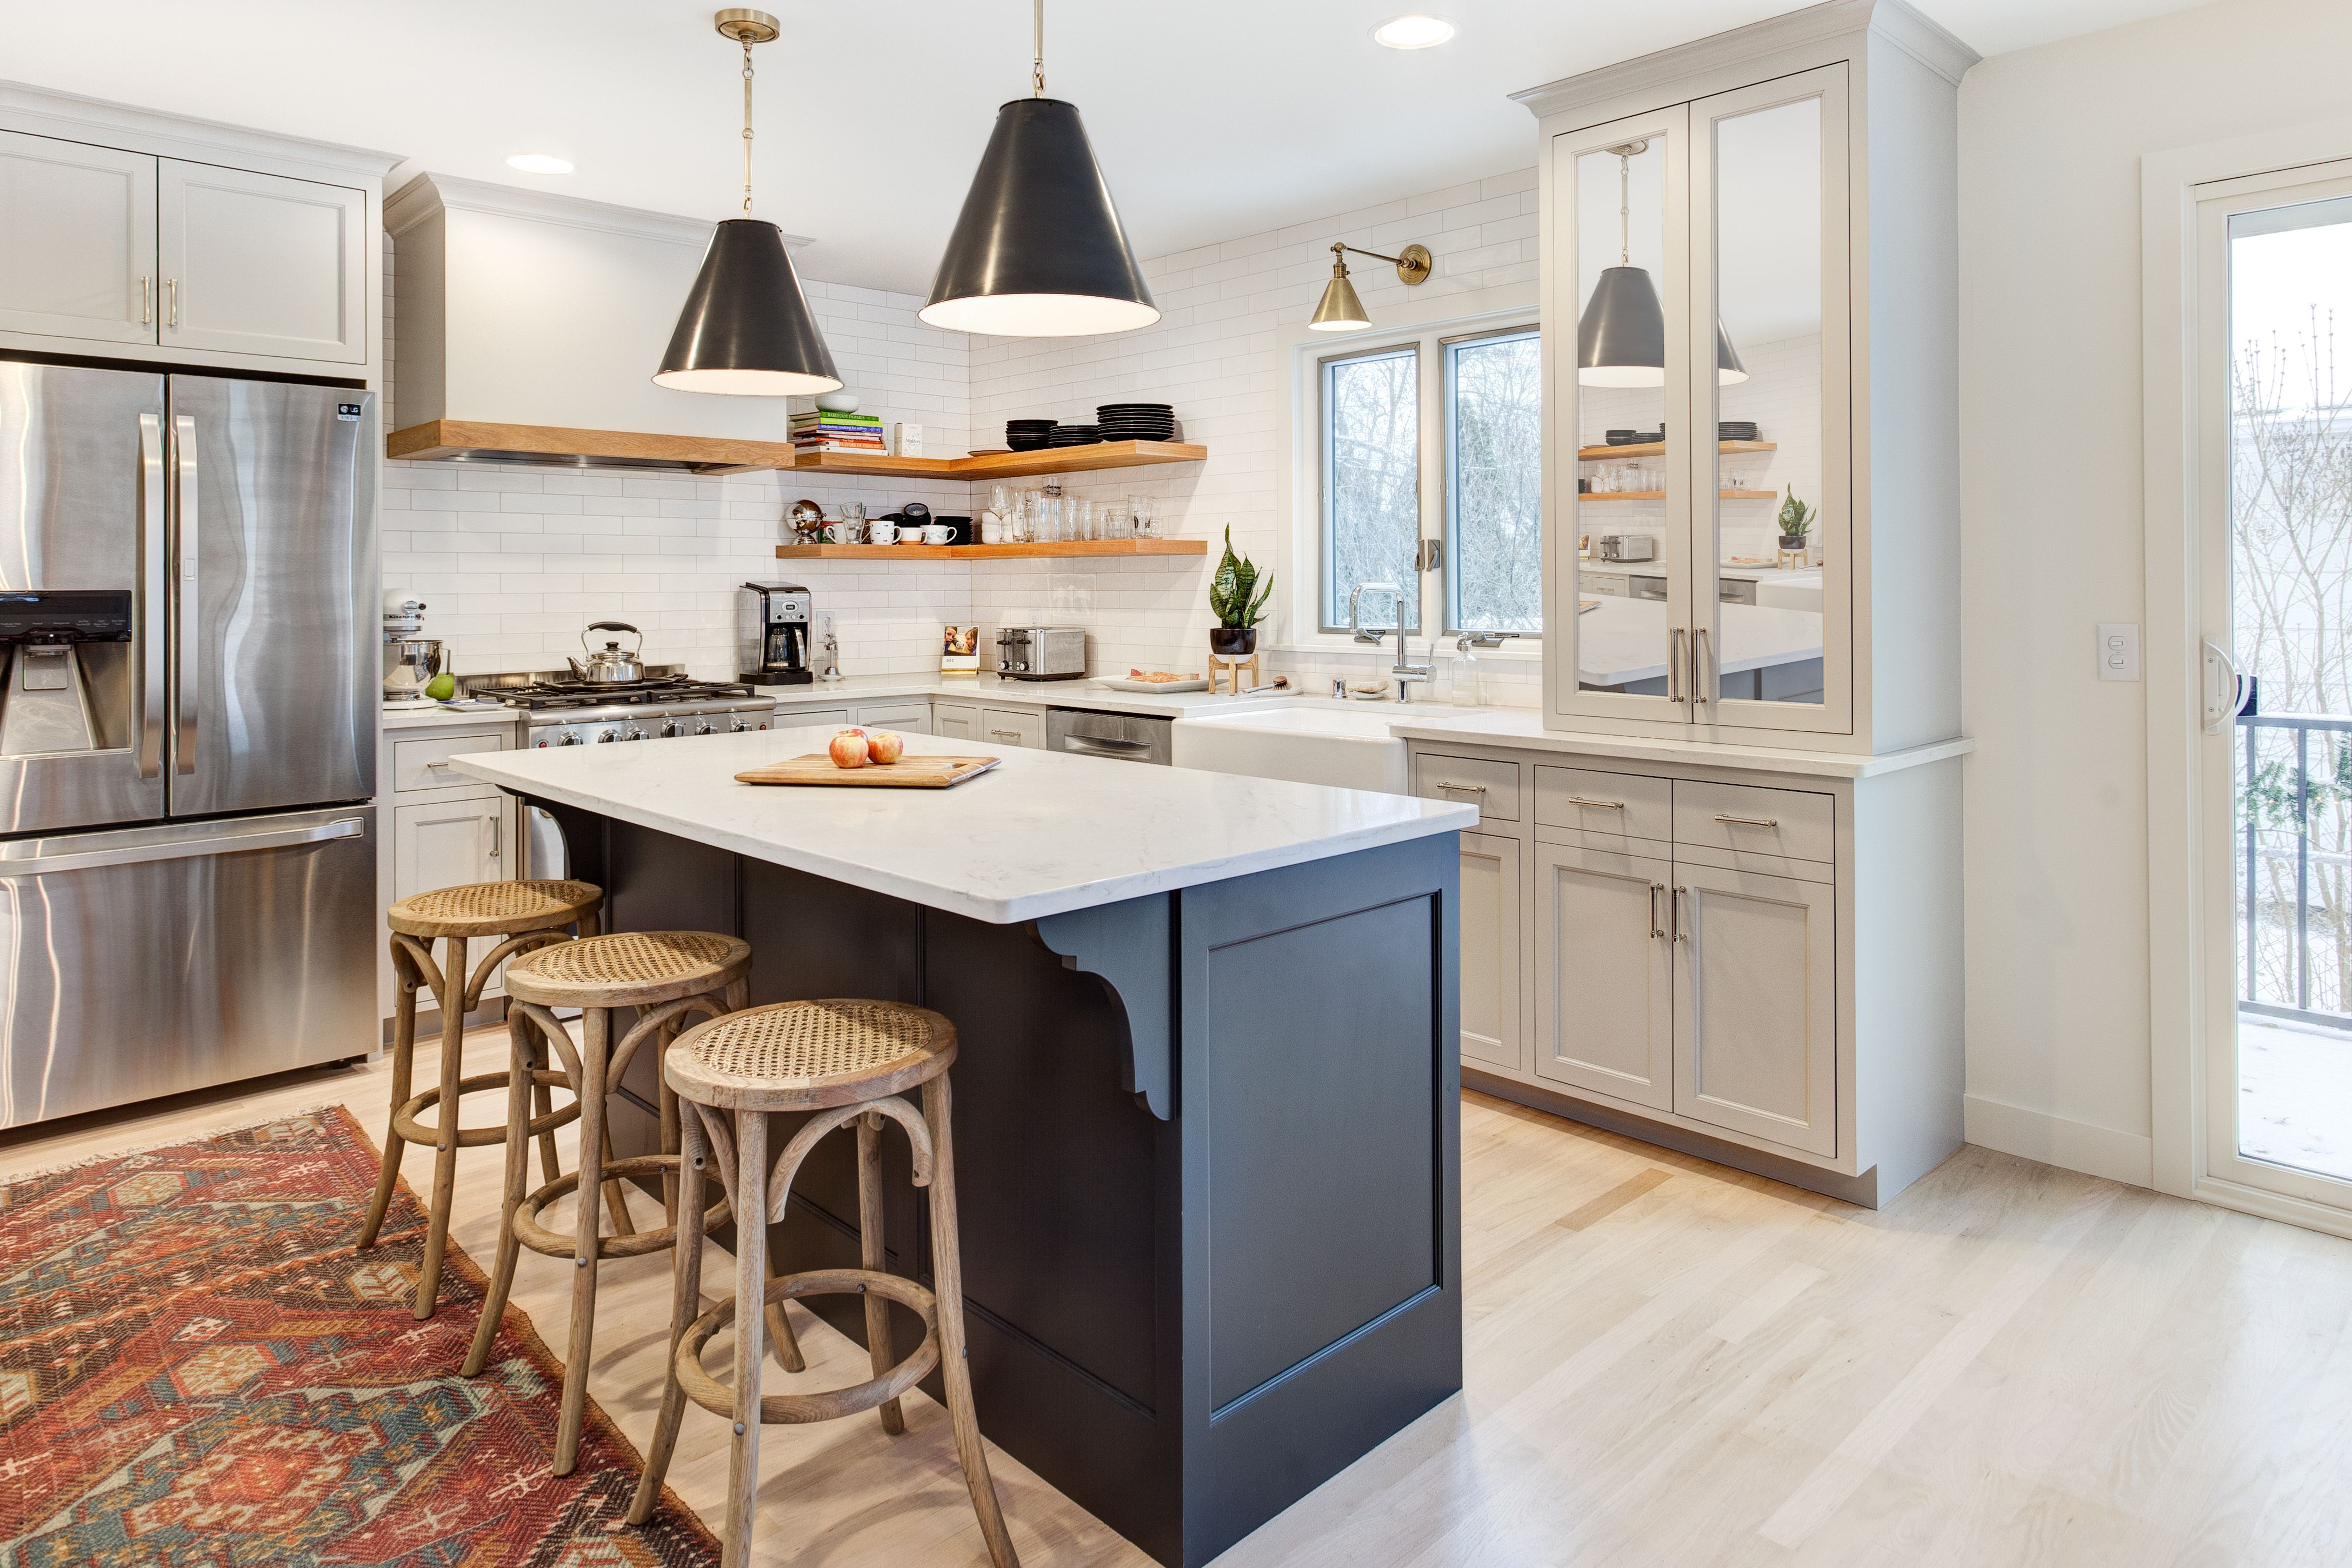 Remodeled Mid Century Rambler Kitchen Remodel With Contrasting Island And Open Shelving Diy Kitchen Renovation Kitchen Redesign Fresh Kitchen